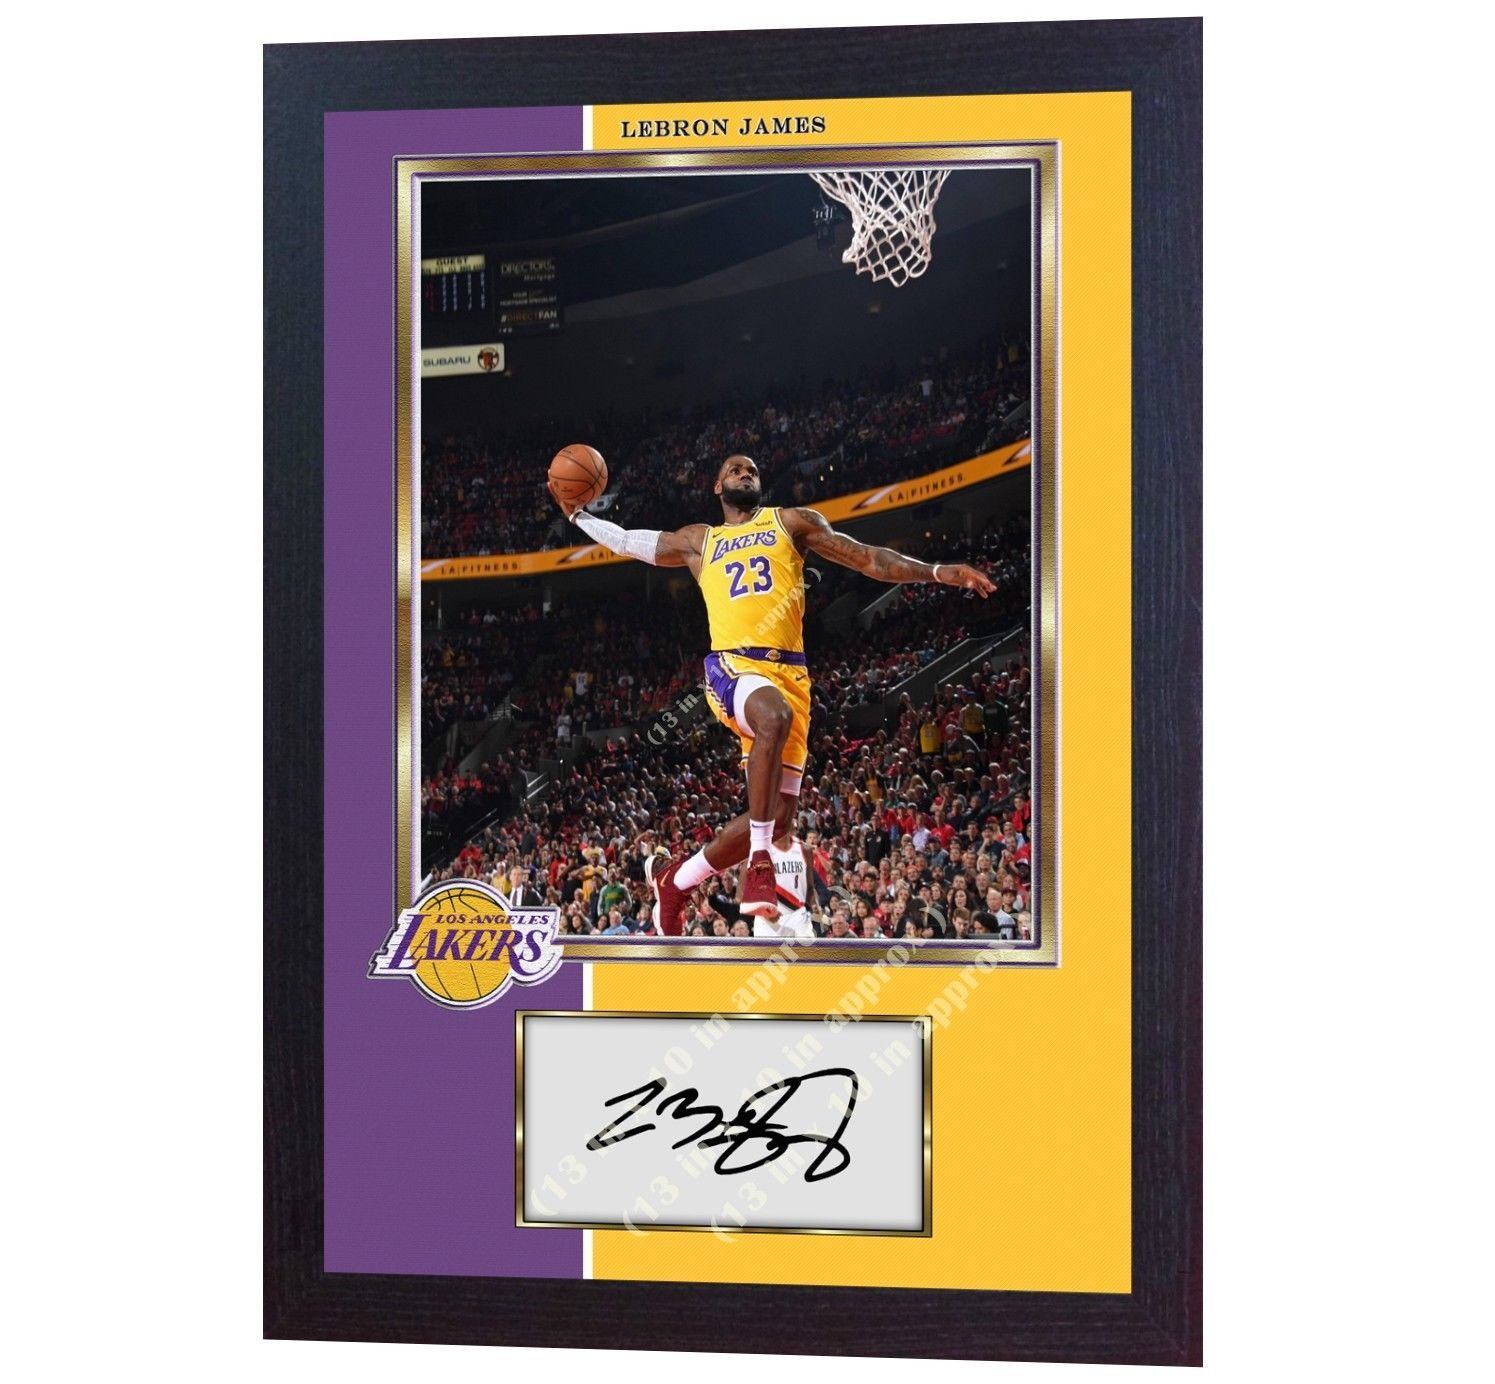 LeBron James NBA Los Angeles Lakers signed autograph LEBRON photo print Framed